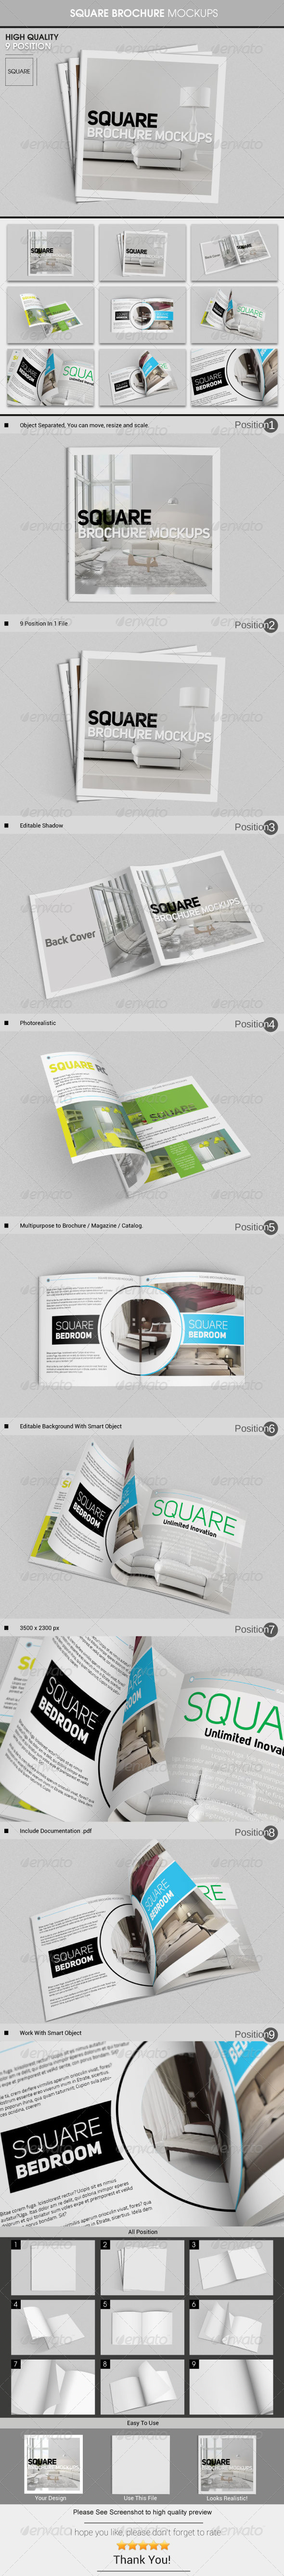 GraphicRiver Square Brochure Mockups 6286053